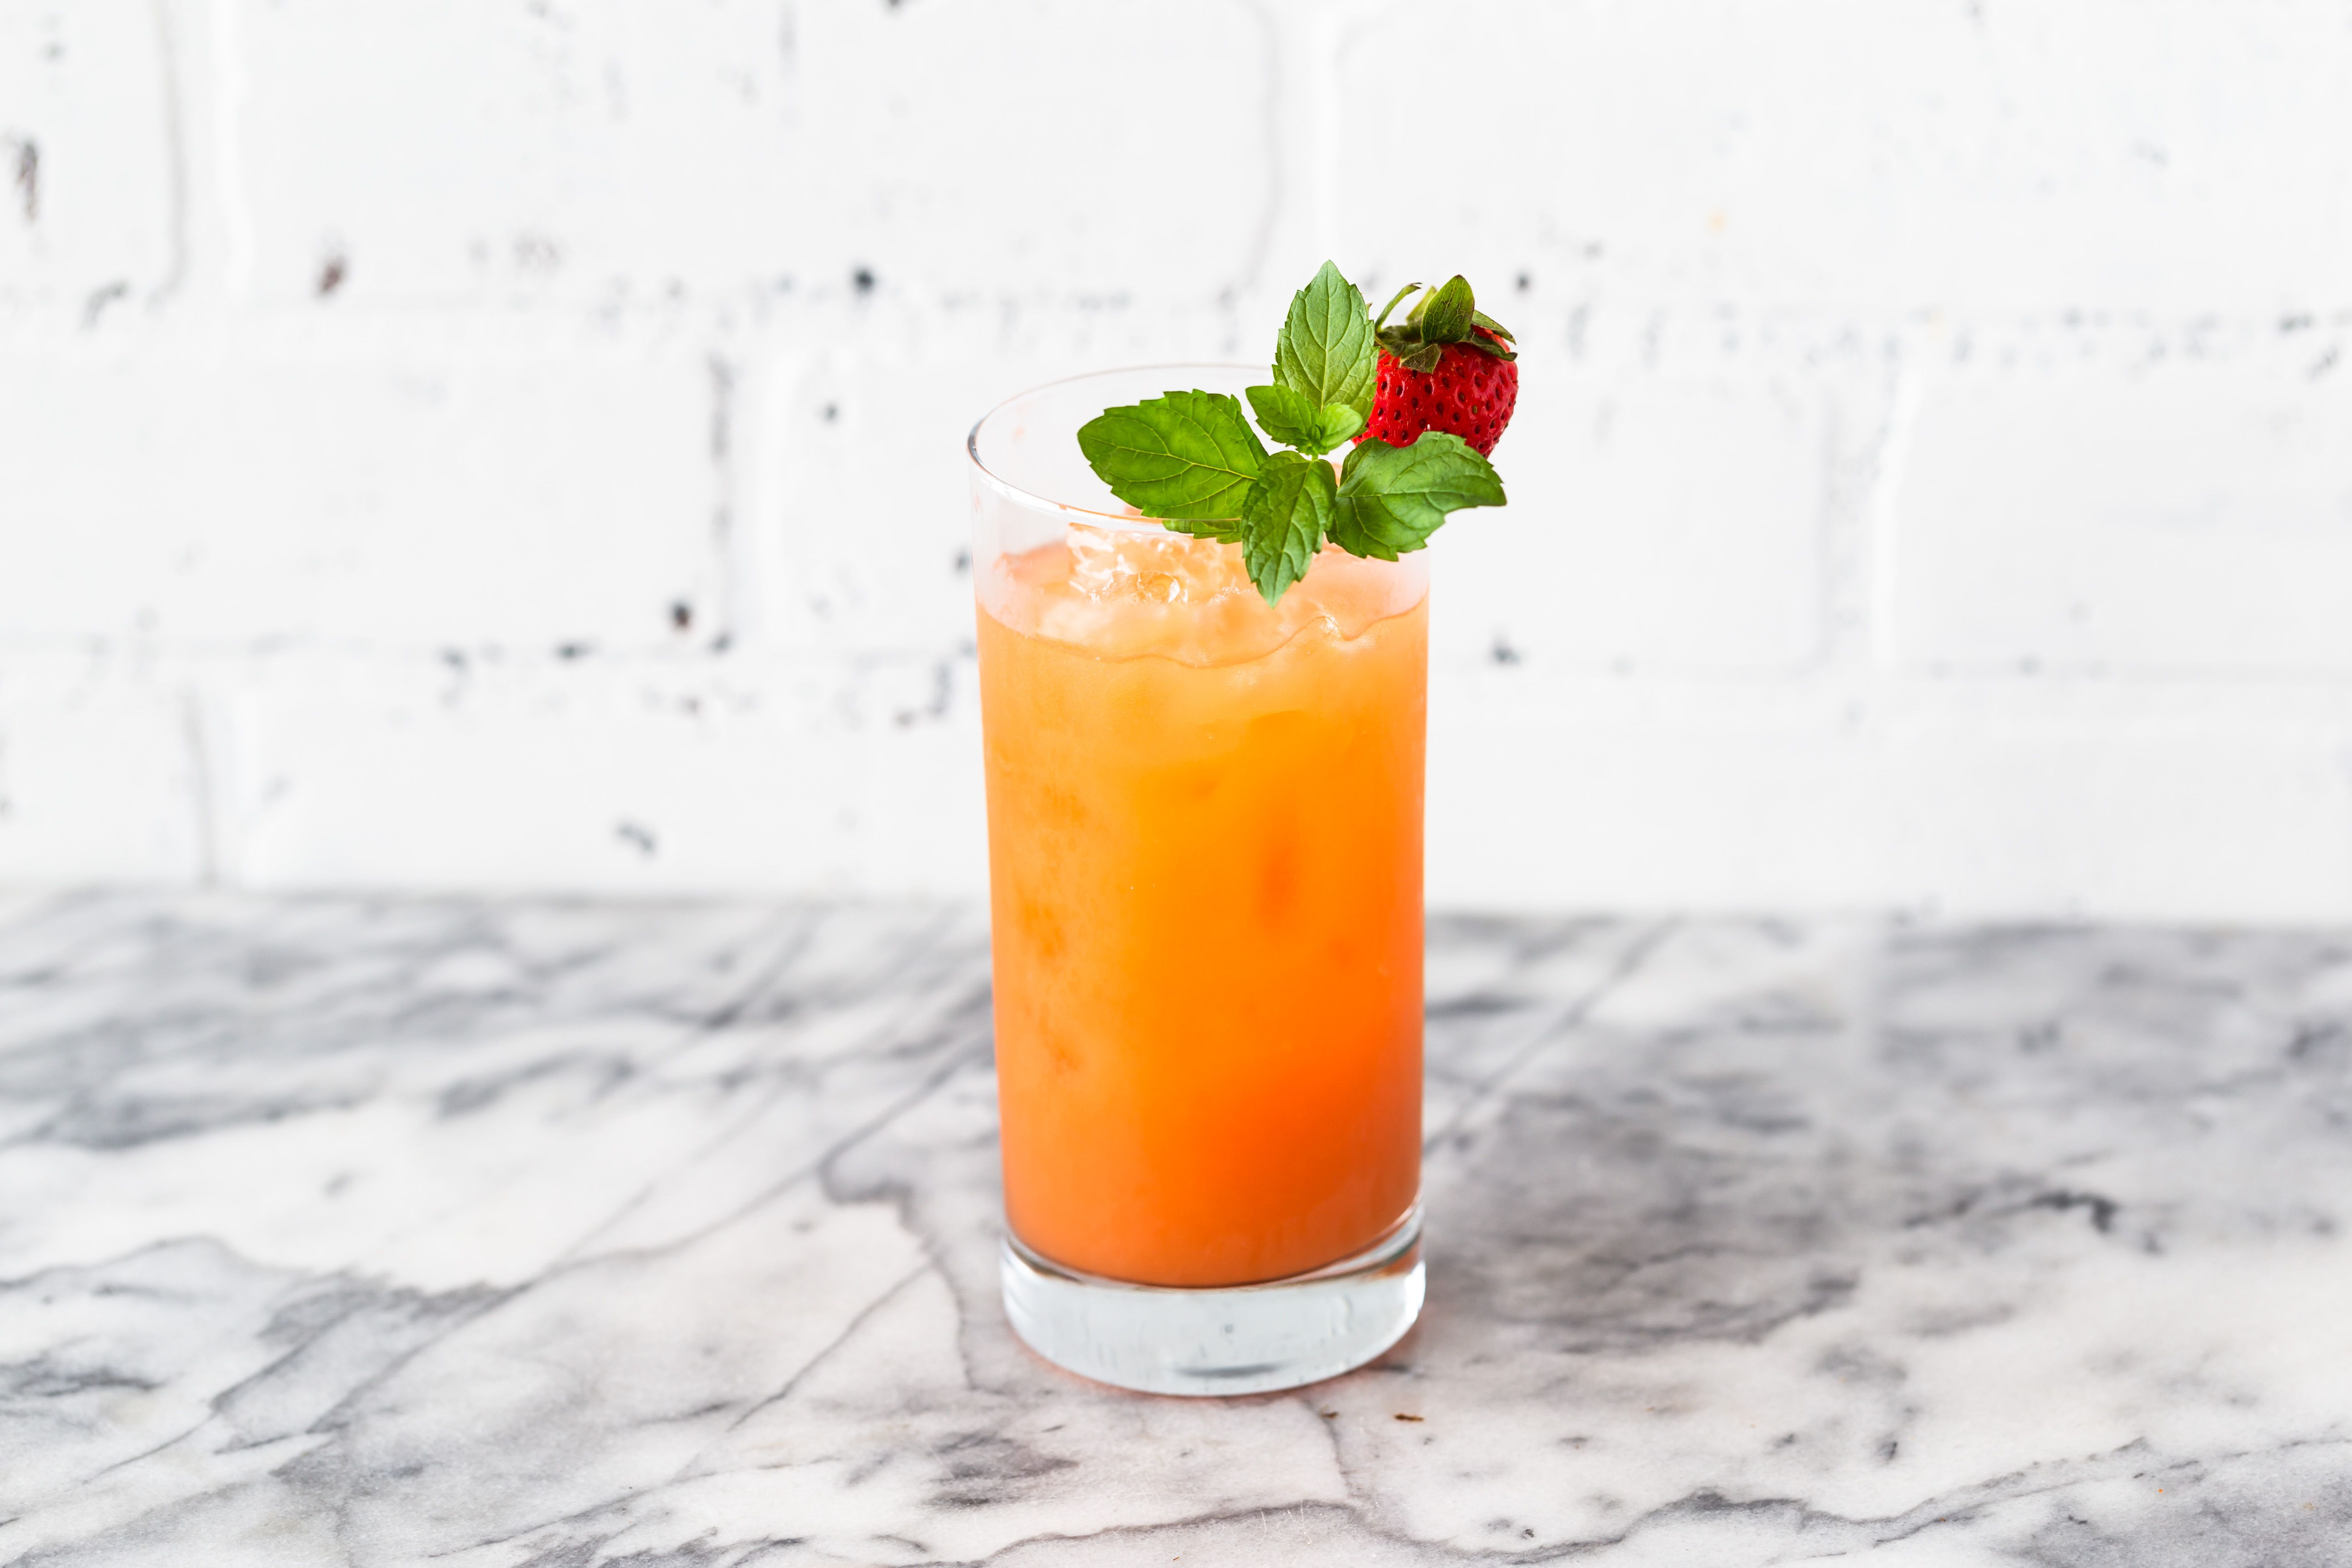 Garnished with fresh mint and a strawberry